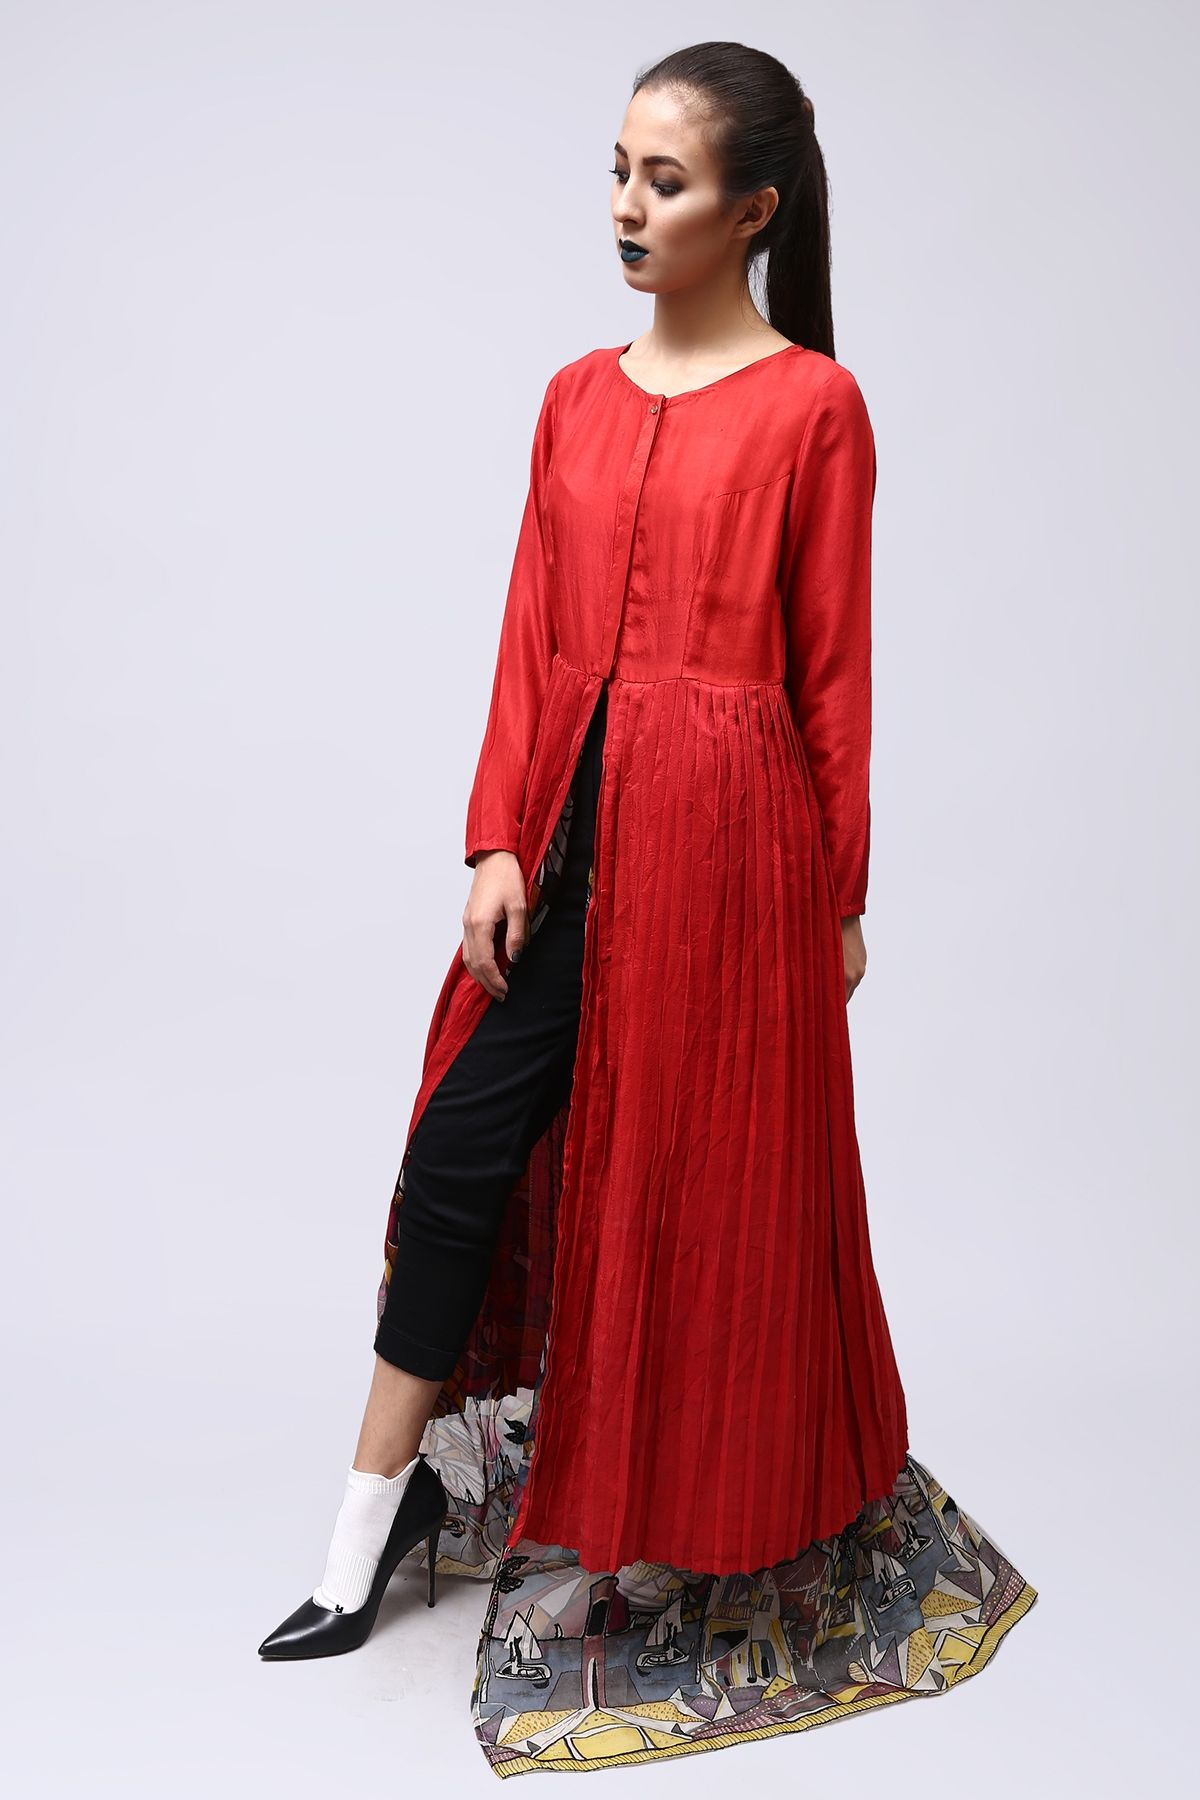 Silk and organza red long pret by generation party dresses